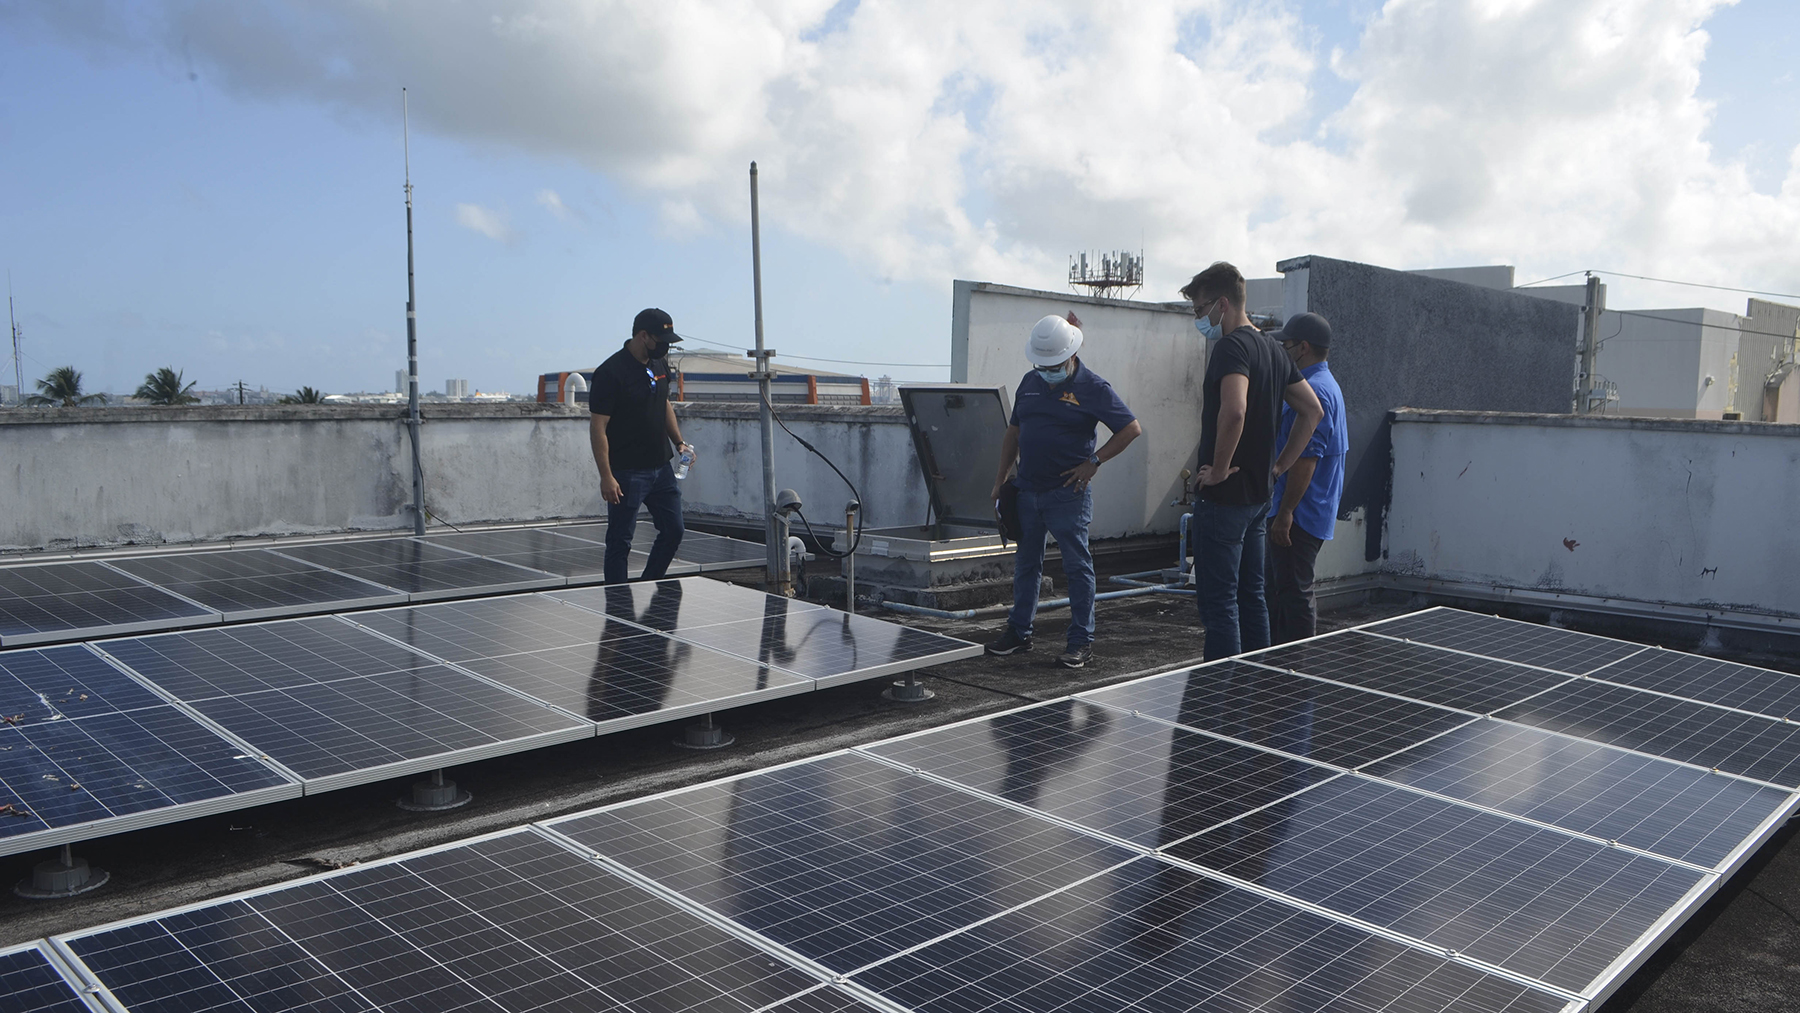 Firefighters at the Cataño fire station in Puerto Rico and a Direct Relief staff member examine solar panels newly installed on the station roof. (Ana Umpierre/Direct Relief)